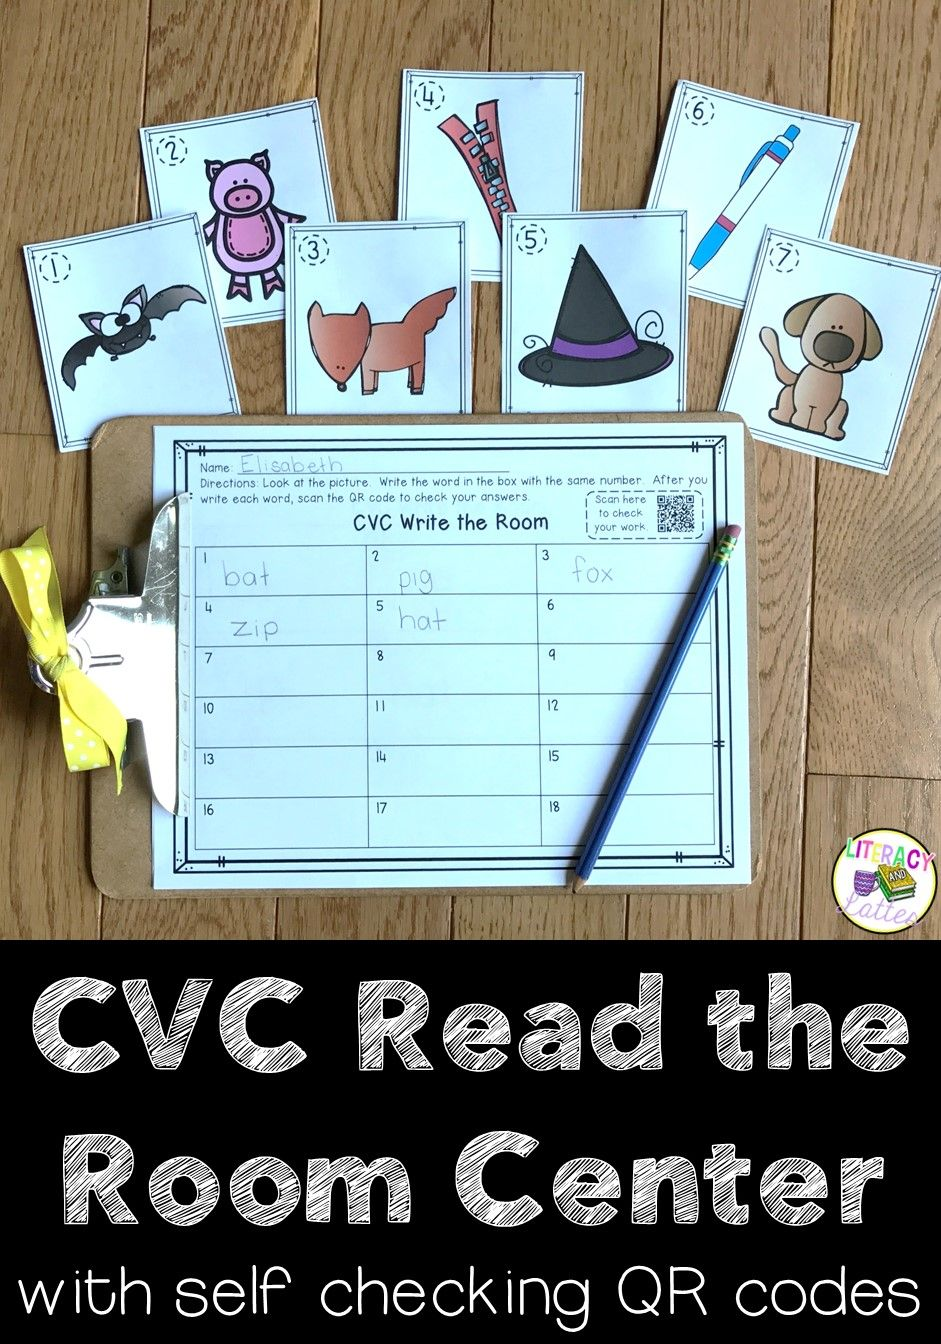 CVC Read the Room Center with Self Checking QR codes | Qr codes and ...